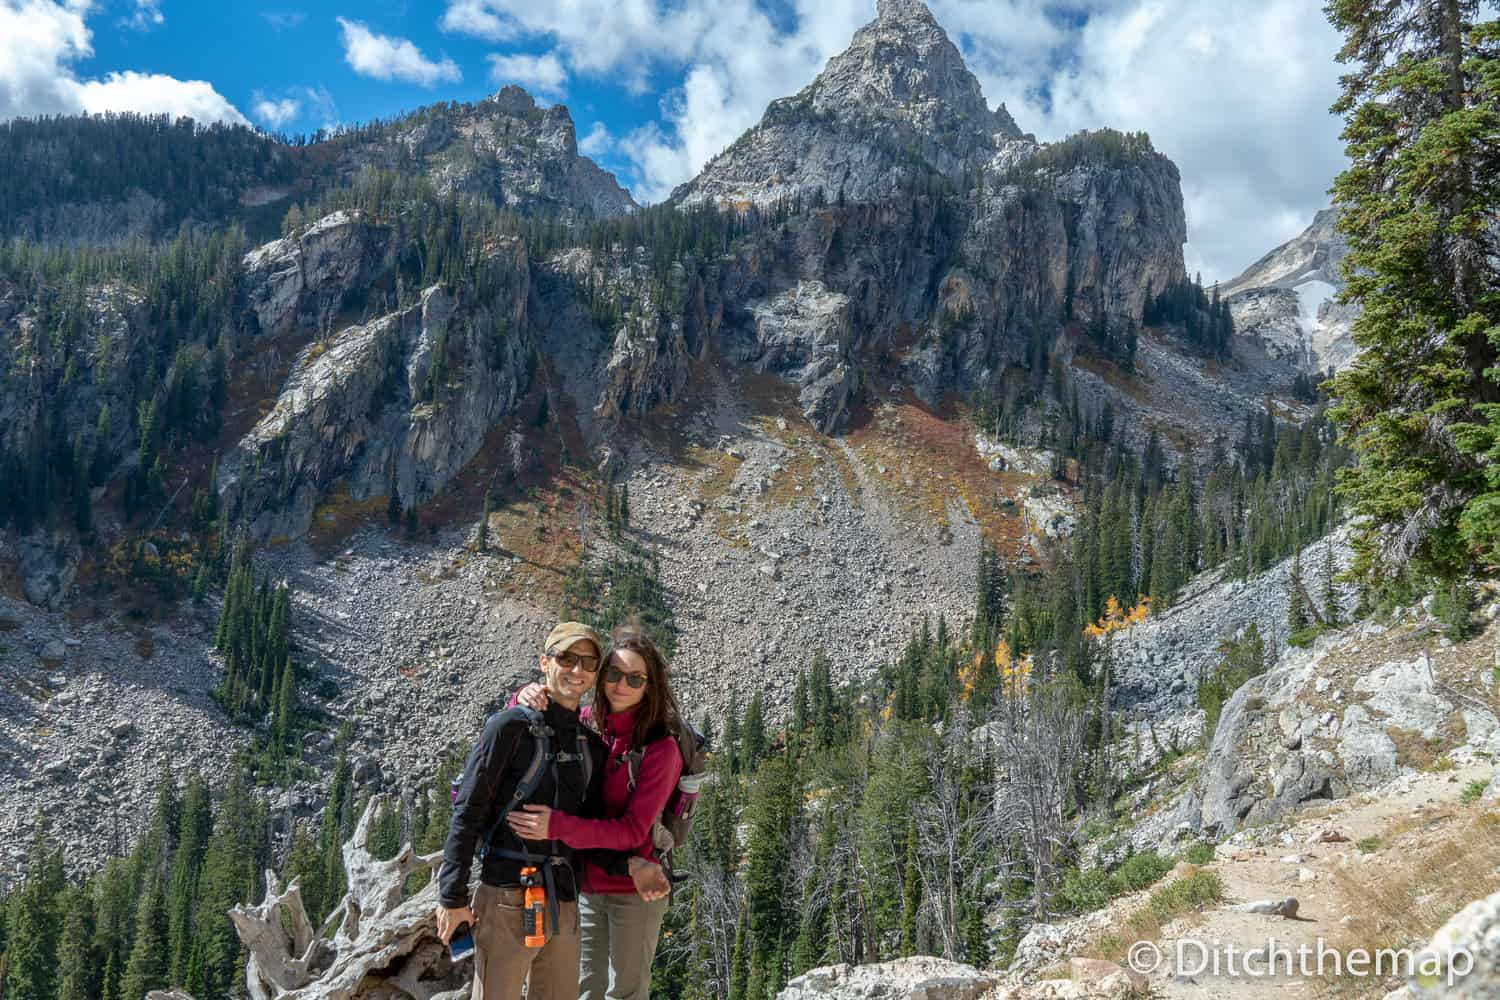 A hiking couple's photo in front of high-peaked mountain, the Grand Tetons